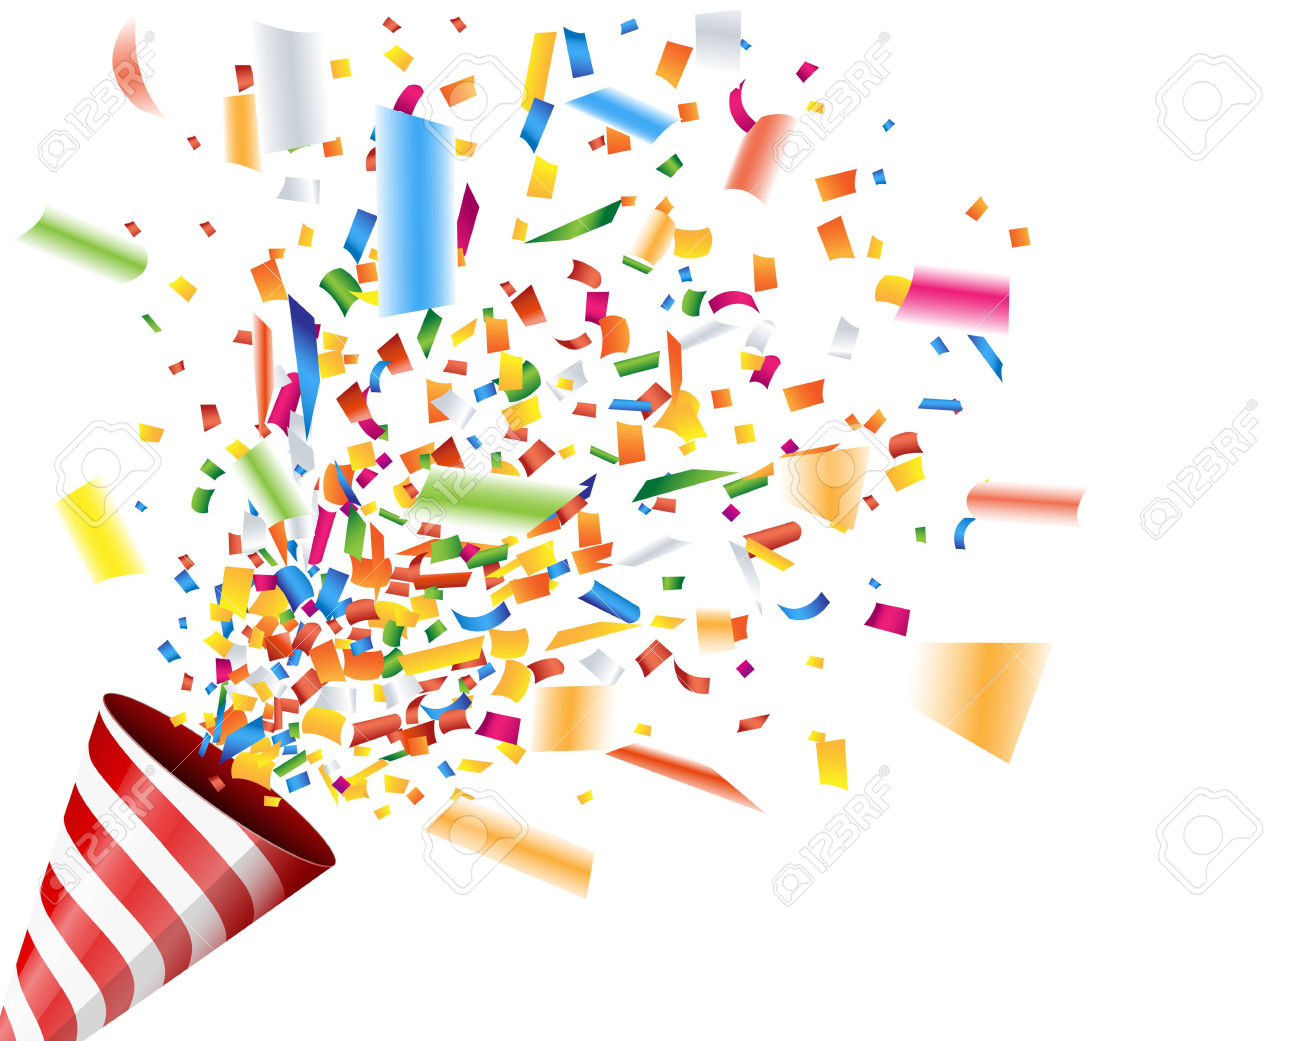 Celebration clipart confetti explosion #8